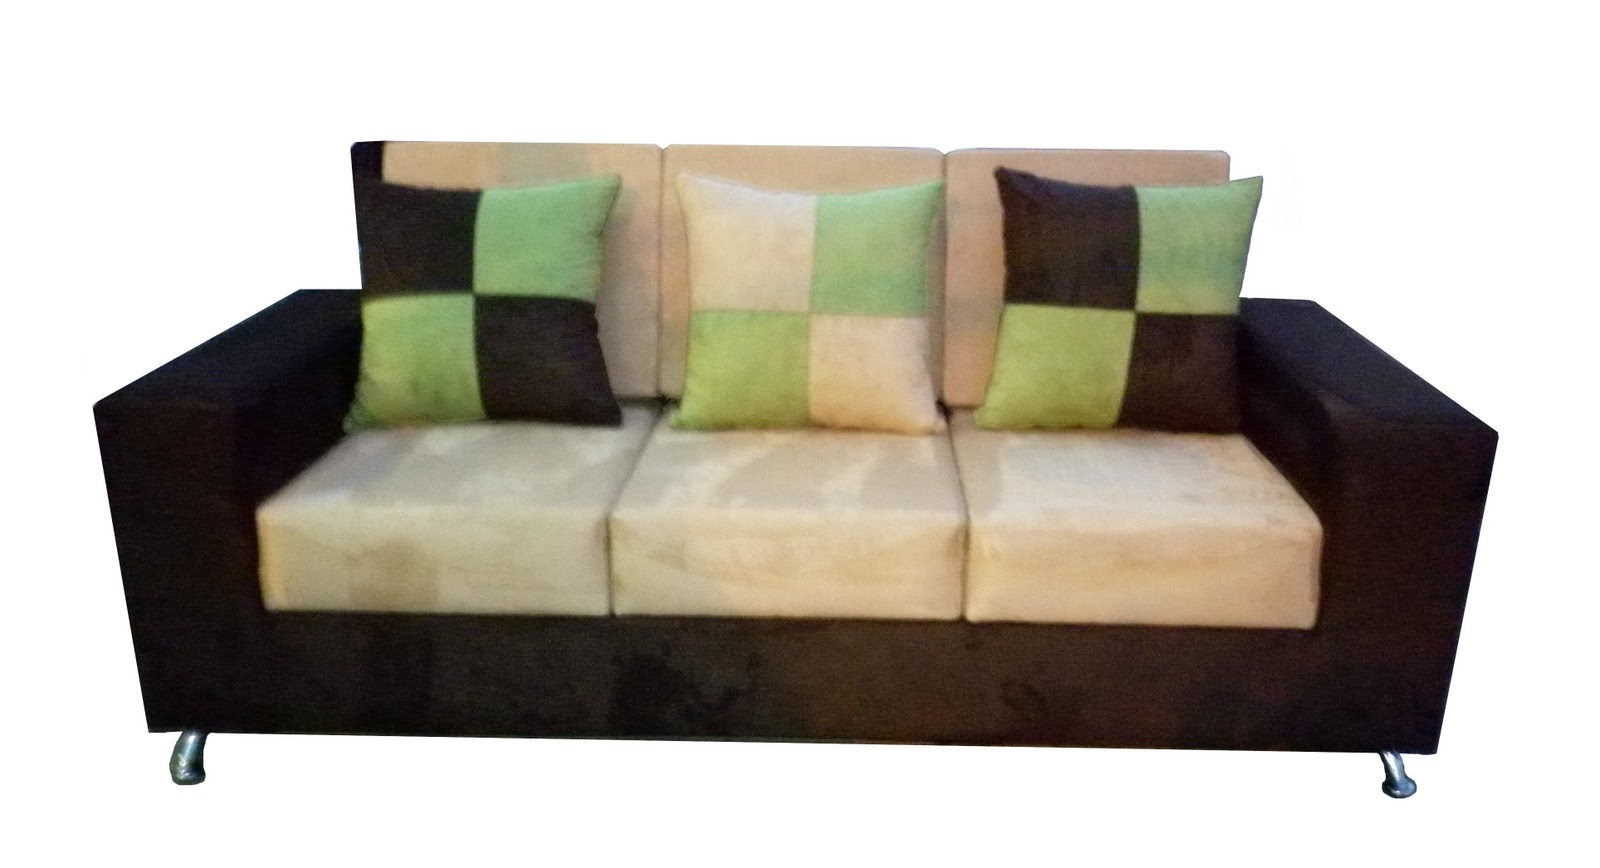 February 2014 Living Room Furniture Sofa And Couch Styles # Muebles Ginevra